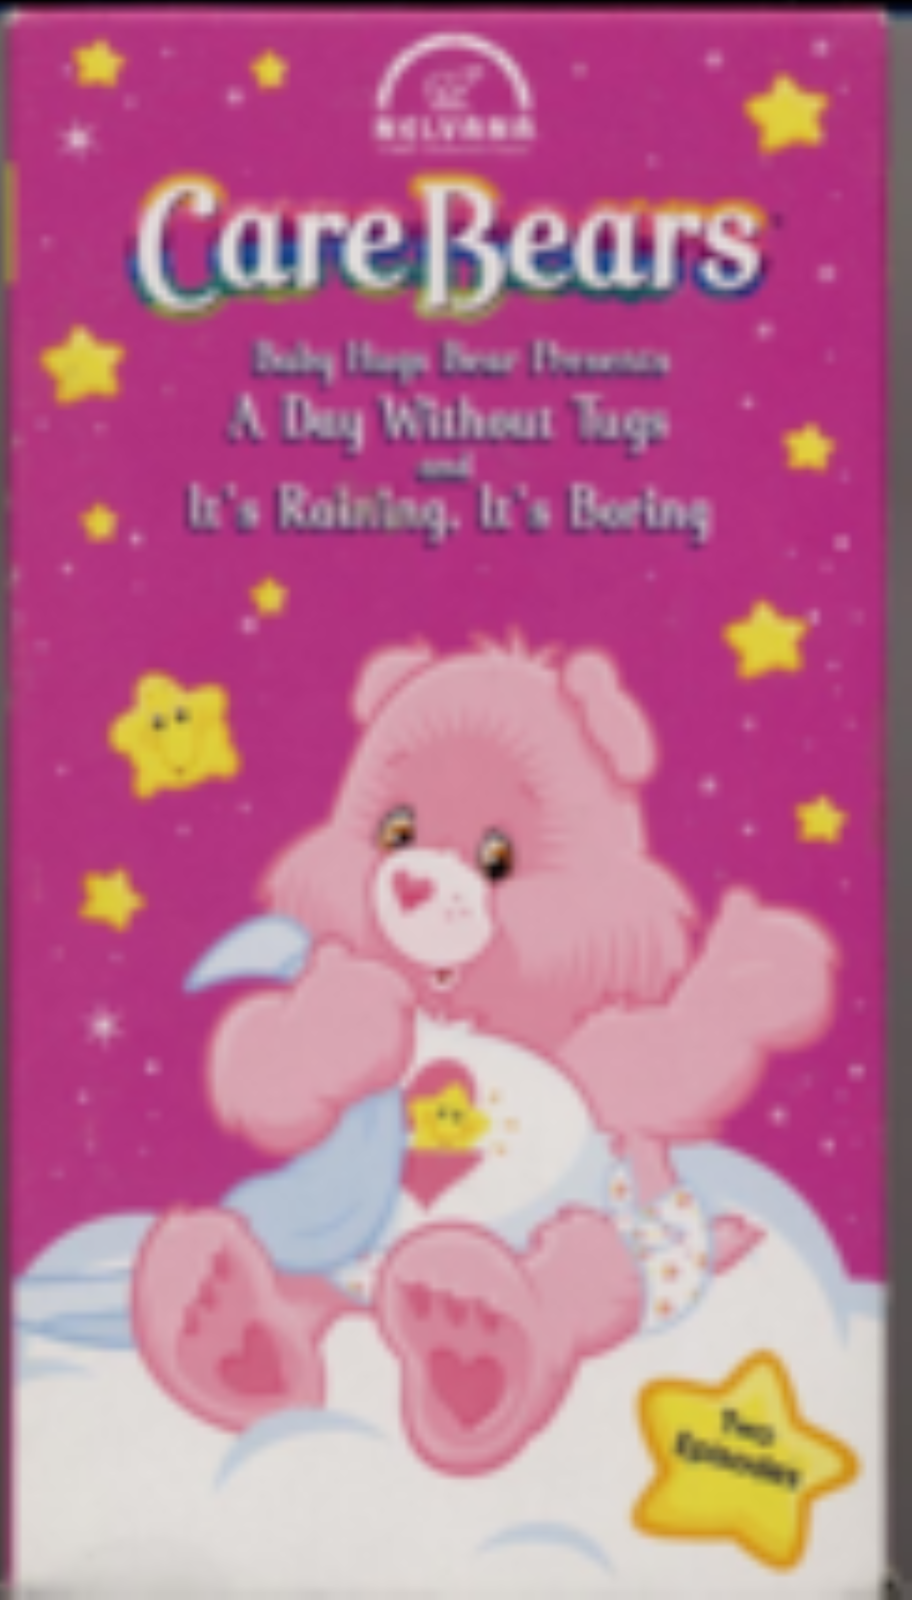 Care Bears #8: Baby Hugs Bear Presents - A Day Without Tugs and It's Raining Vhs